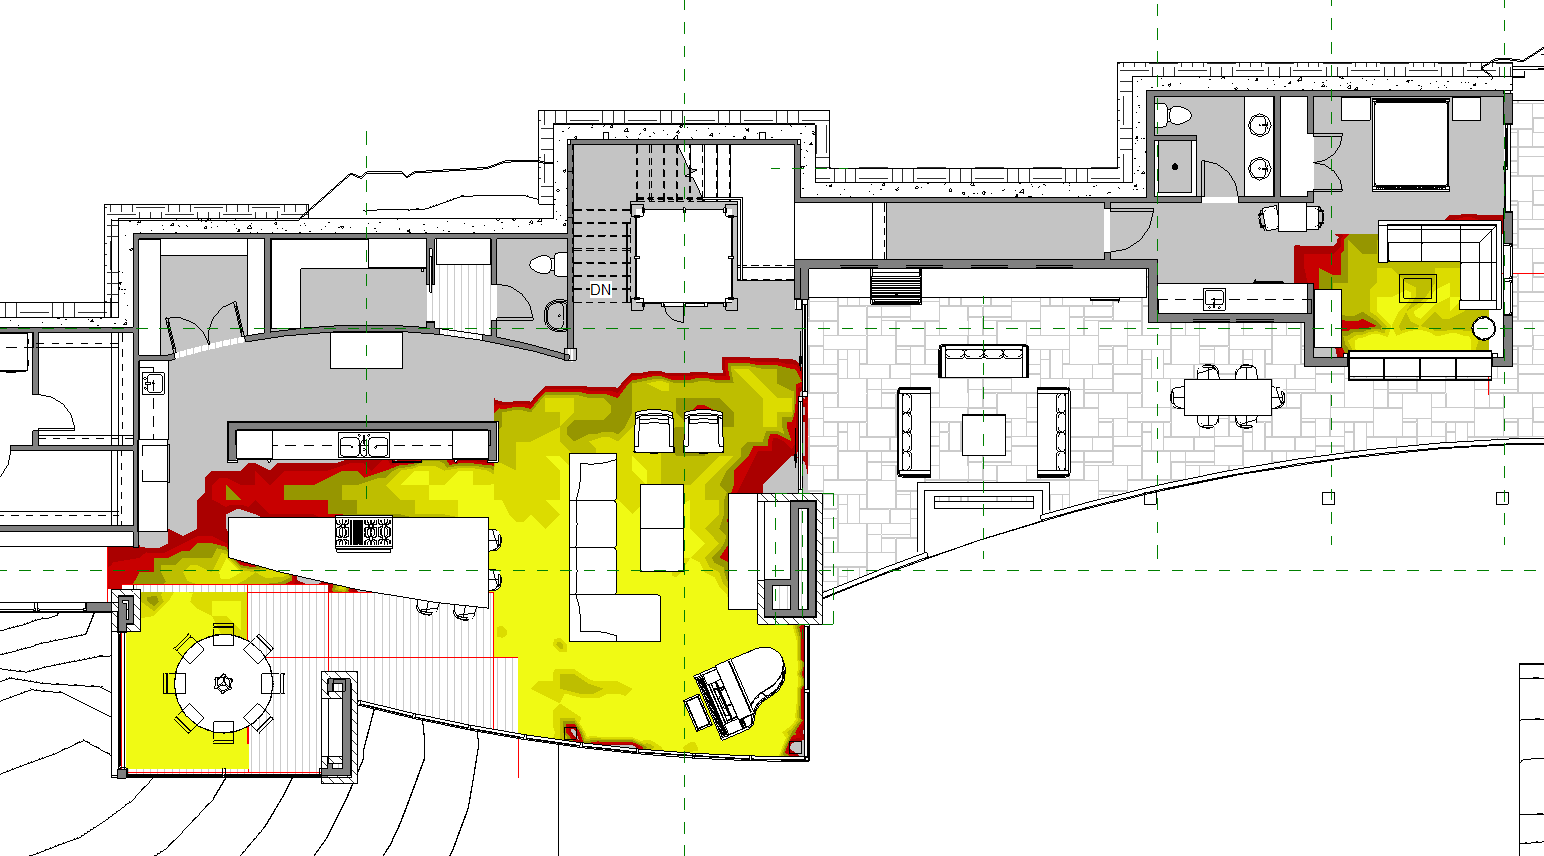 hight resolution of 2018 01 24 15 36 08 autodesk revit 2017 2 floor plan lighting analysis sheet view t o plyw png 102 kb